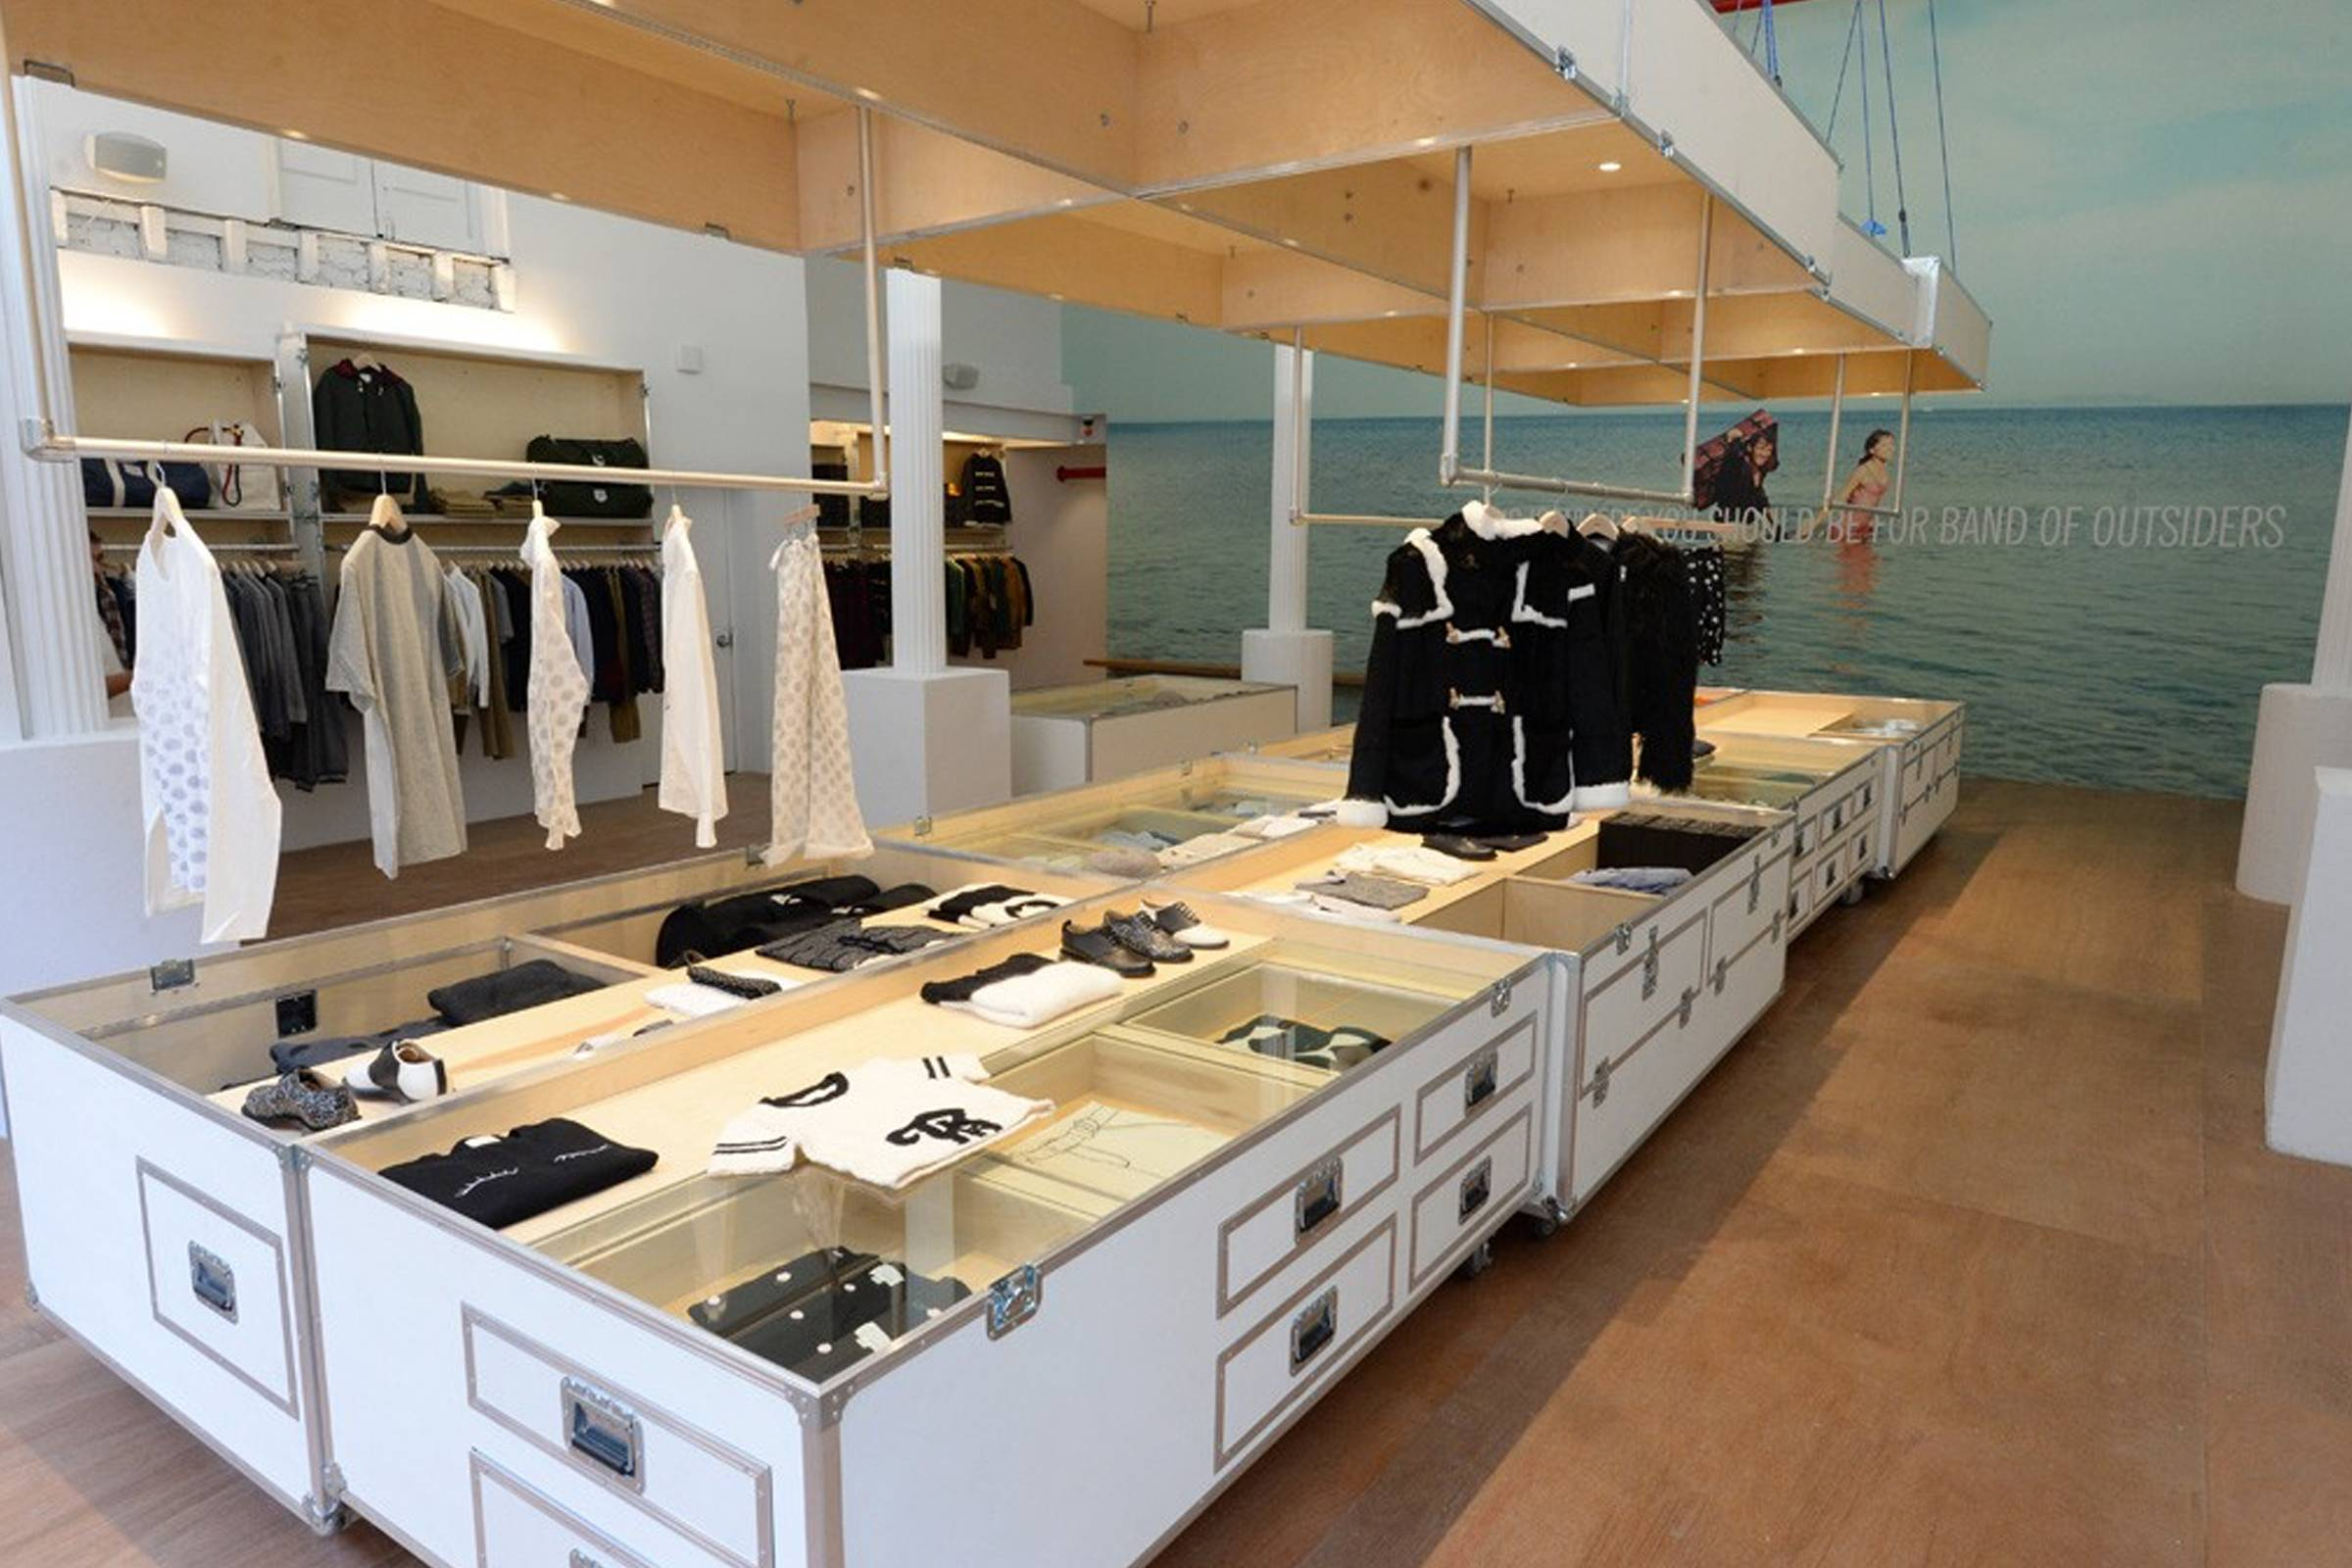 Band of Outsiders' SoHo store in New York City